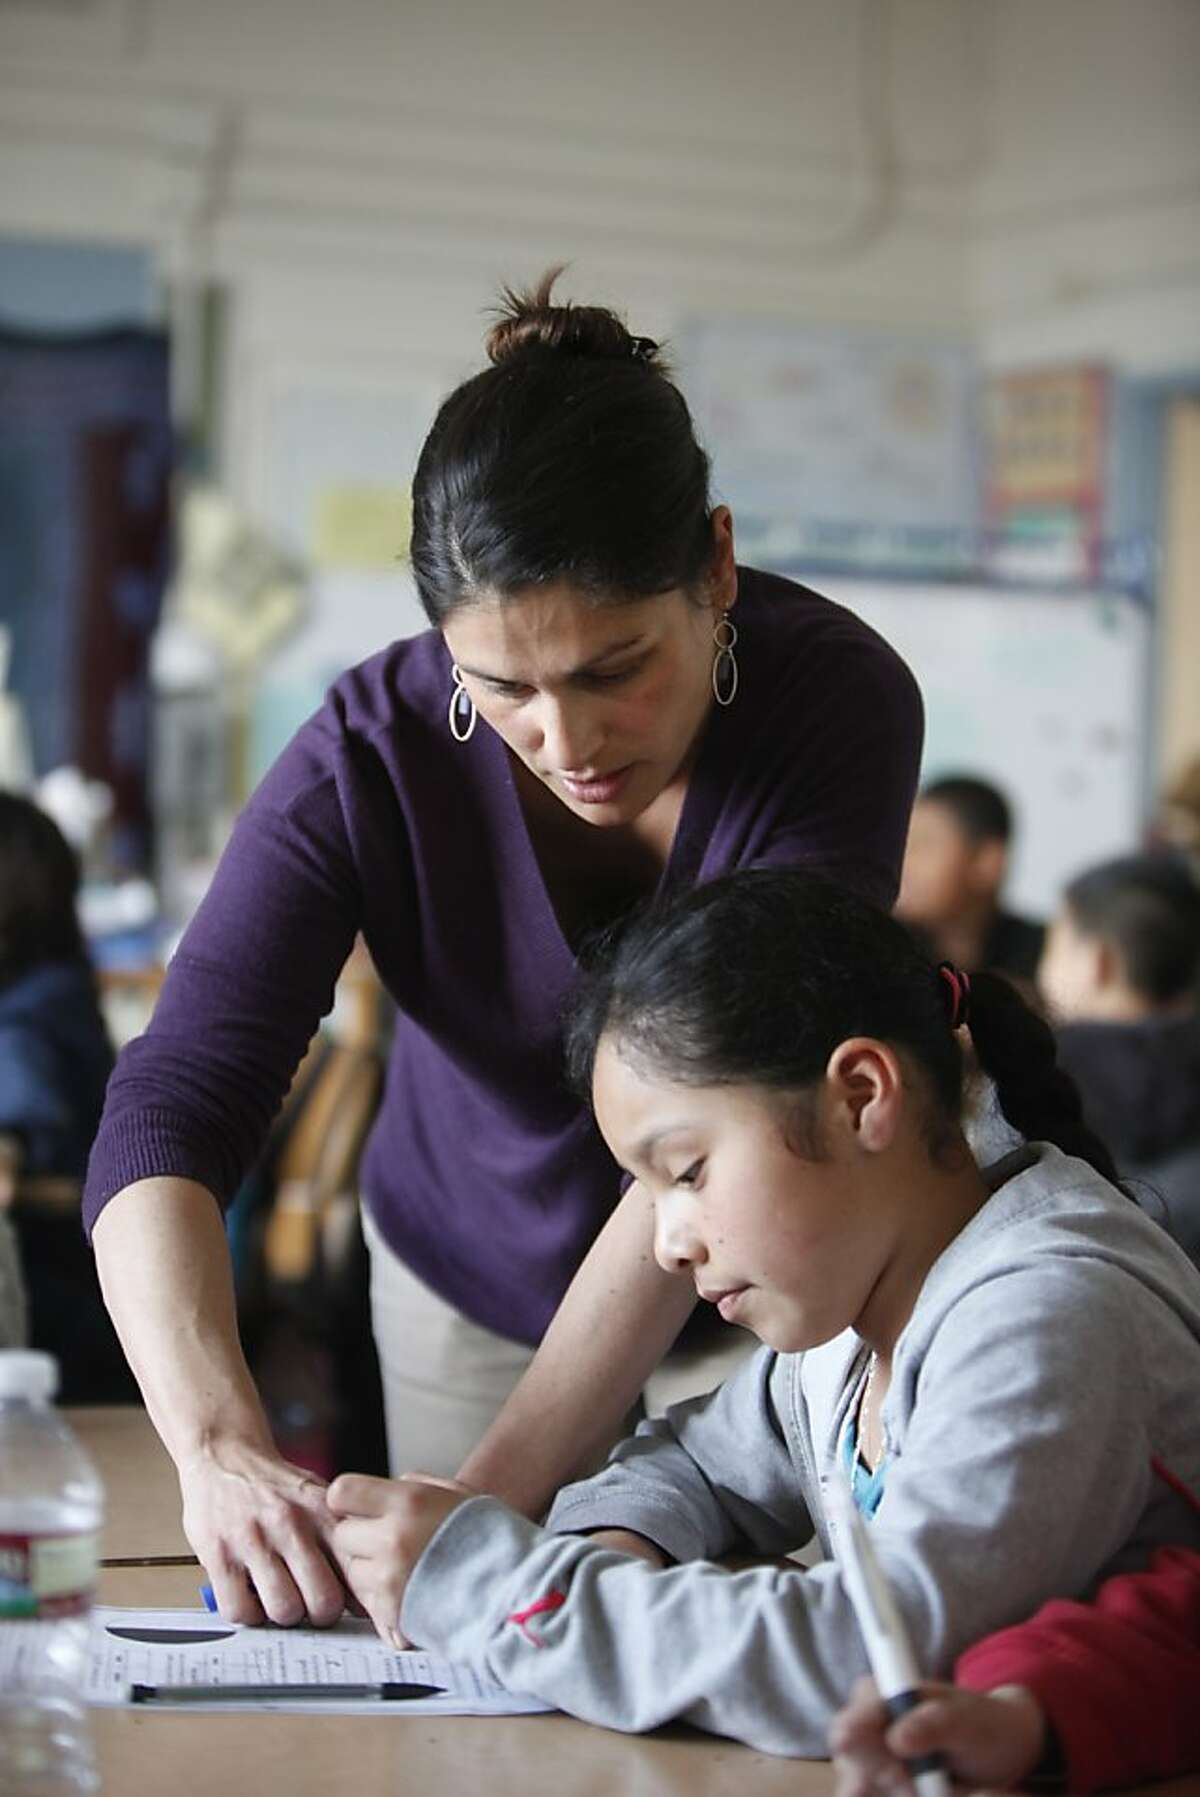 Teacher Jessica Chiarchiaro (l to r) helps fourth grader Daniela Garcia, 10, with a class assignment at Spring Valley Science School on Thursday, February 28, 2013 in San Francisco, Calif.